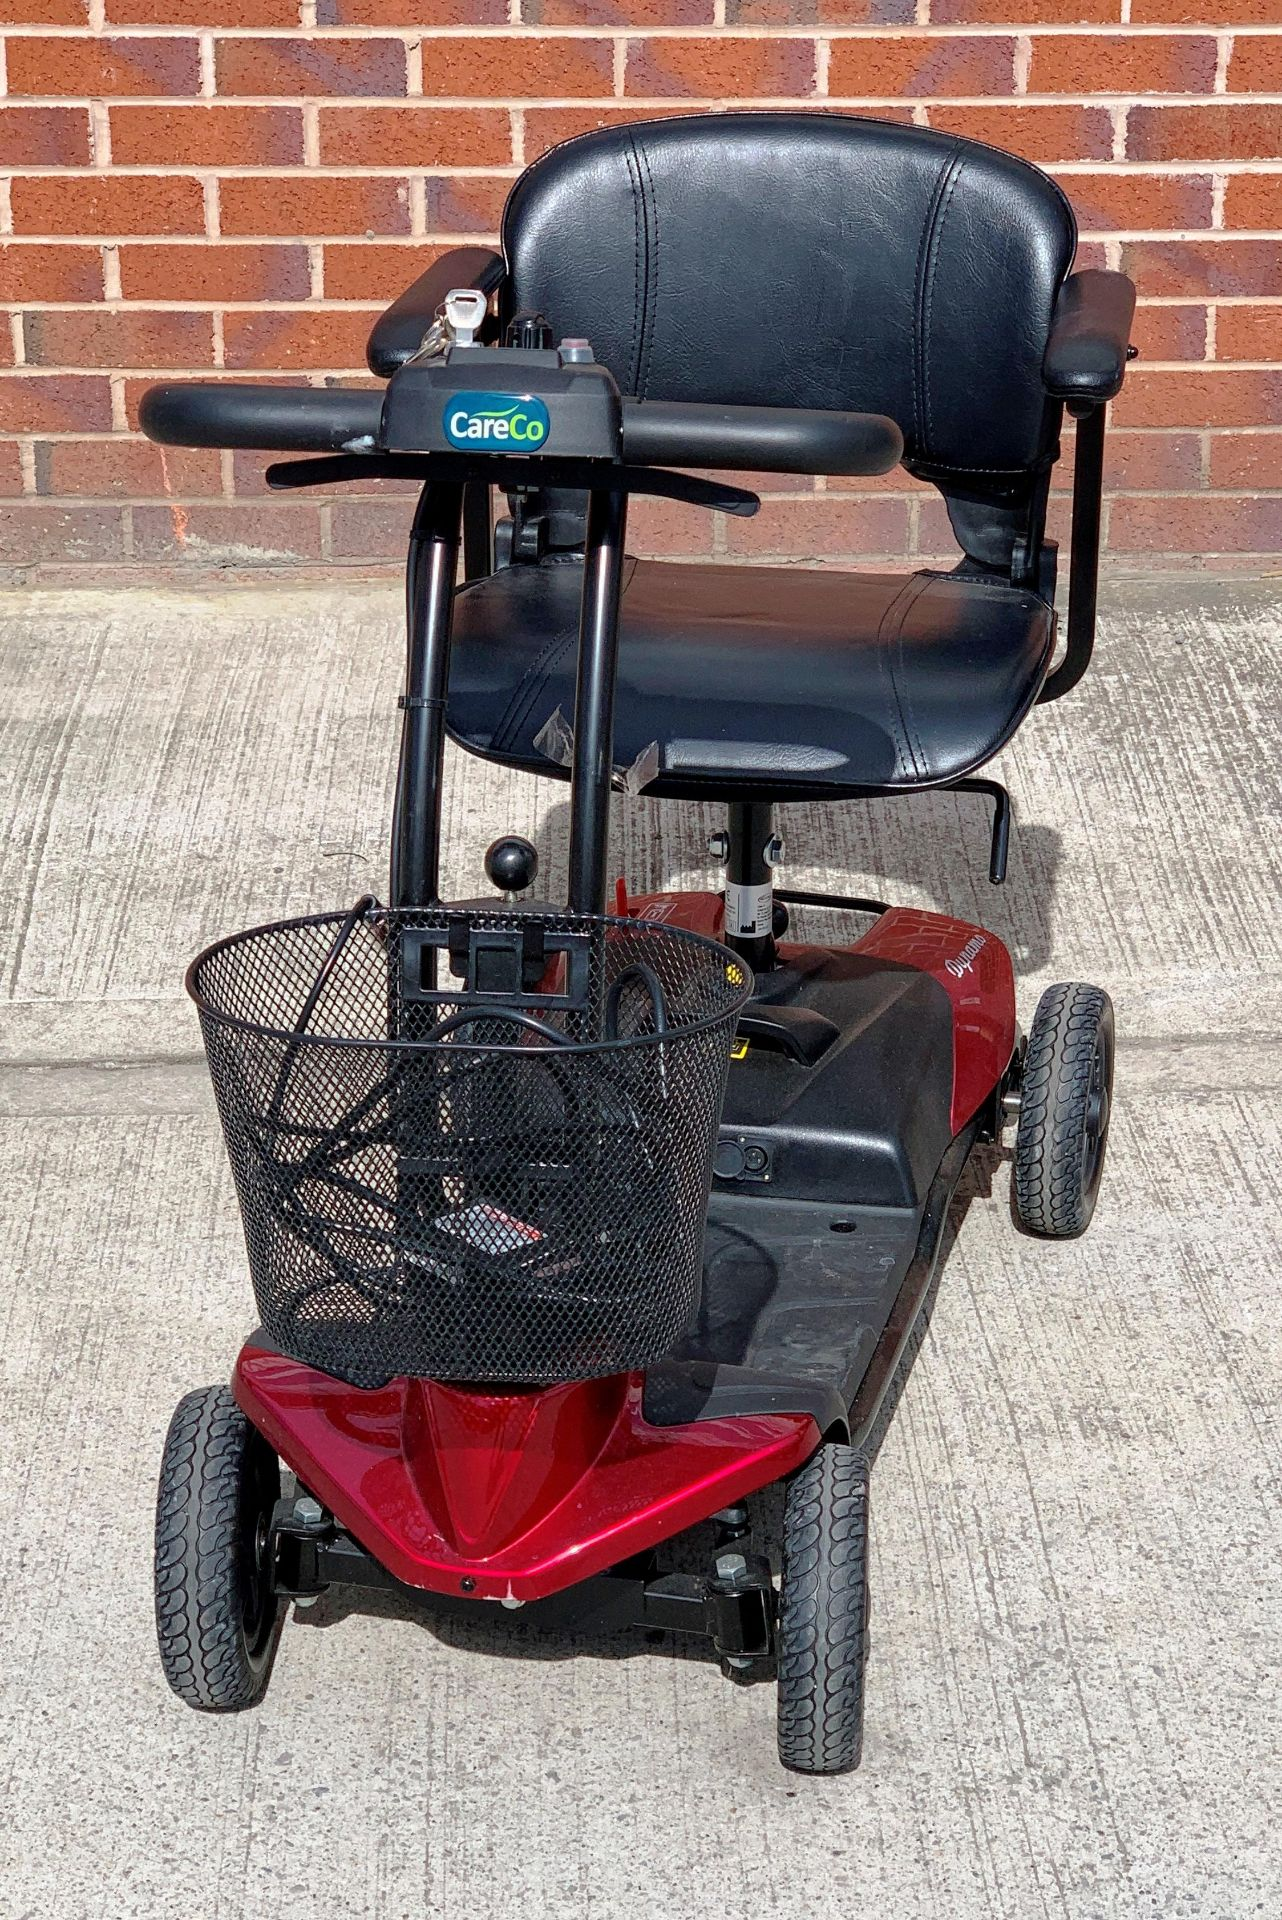 A CTM Dynamo 4 wheel mobility scooter - max weight 150kGs, - Image 5 of 6